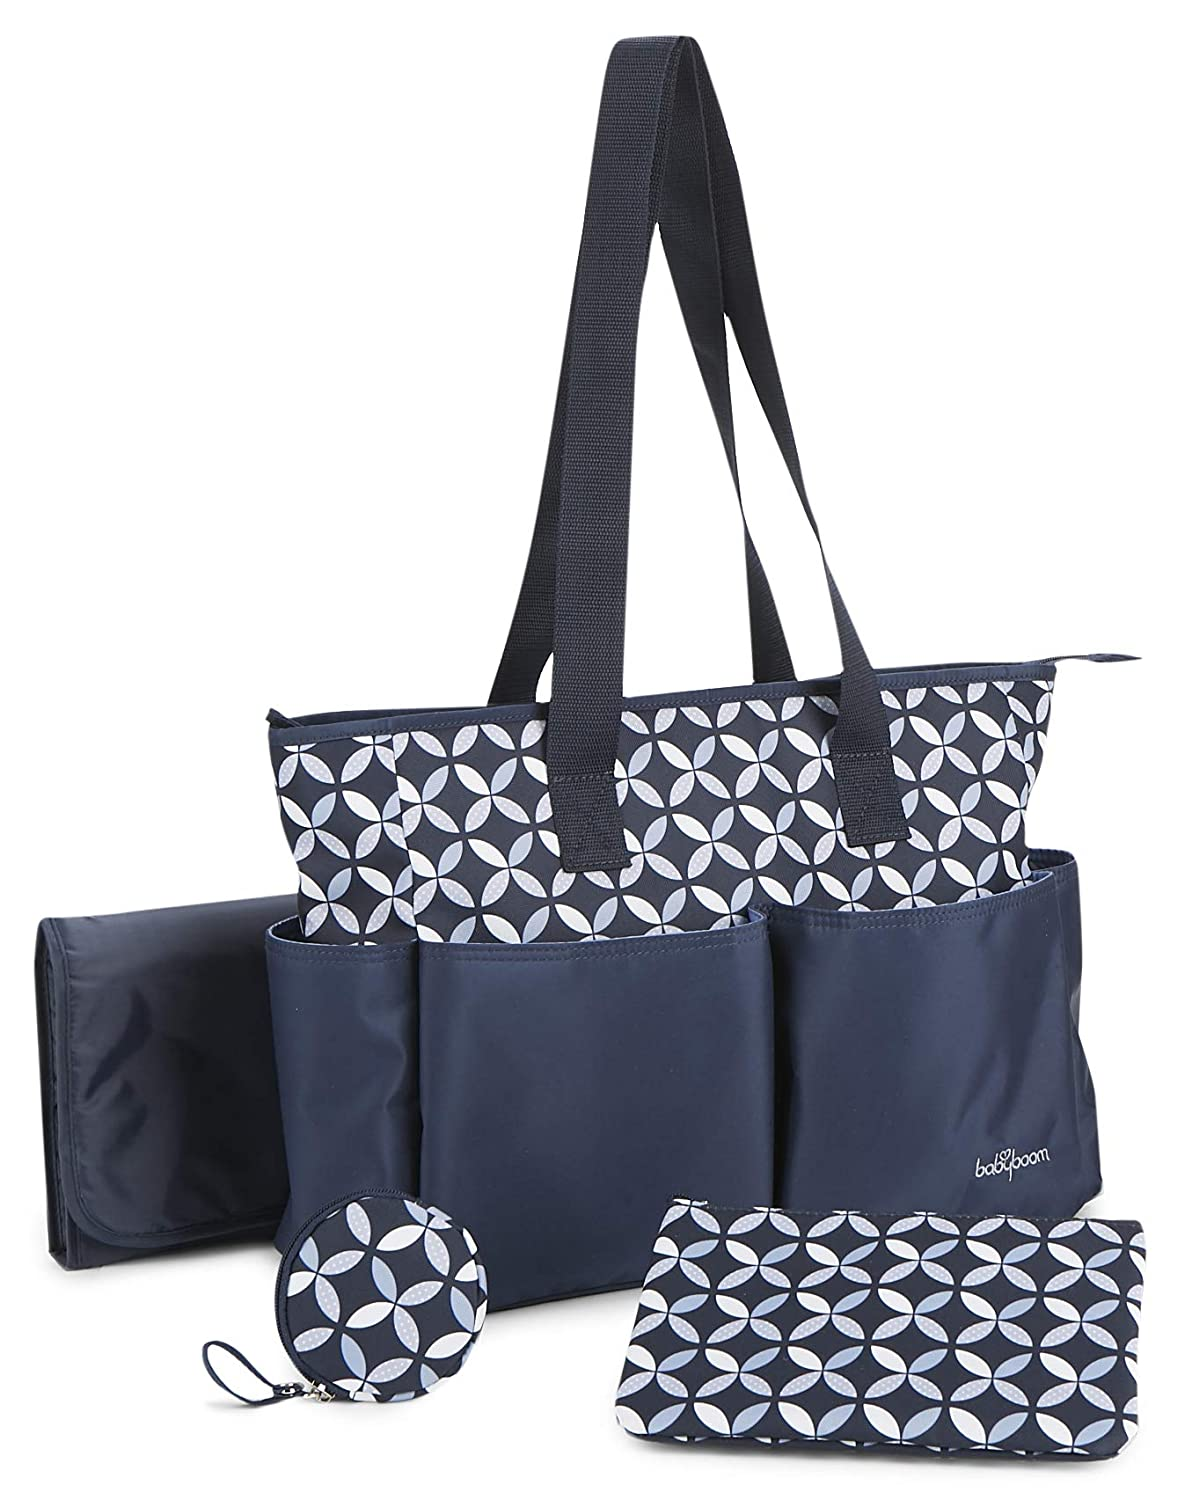 Baby Boom Ivy 4Piece Tote Diaper Bag Set, Navy, One Size